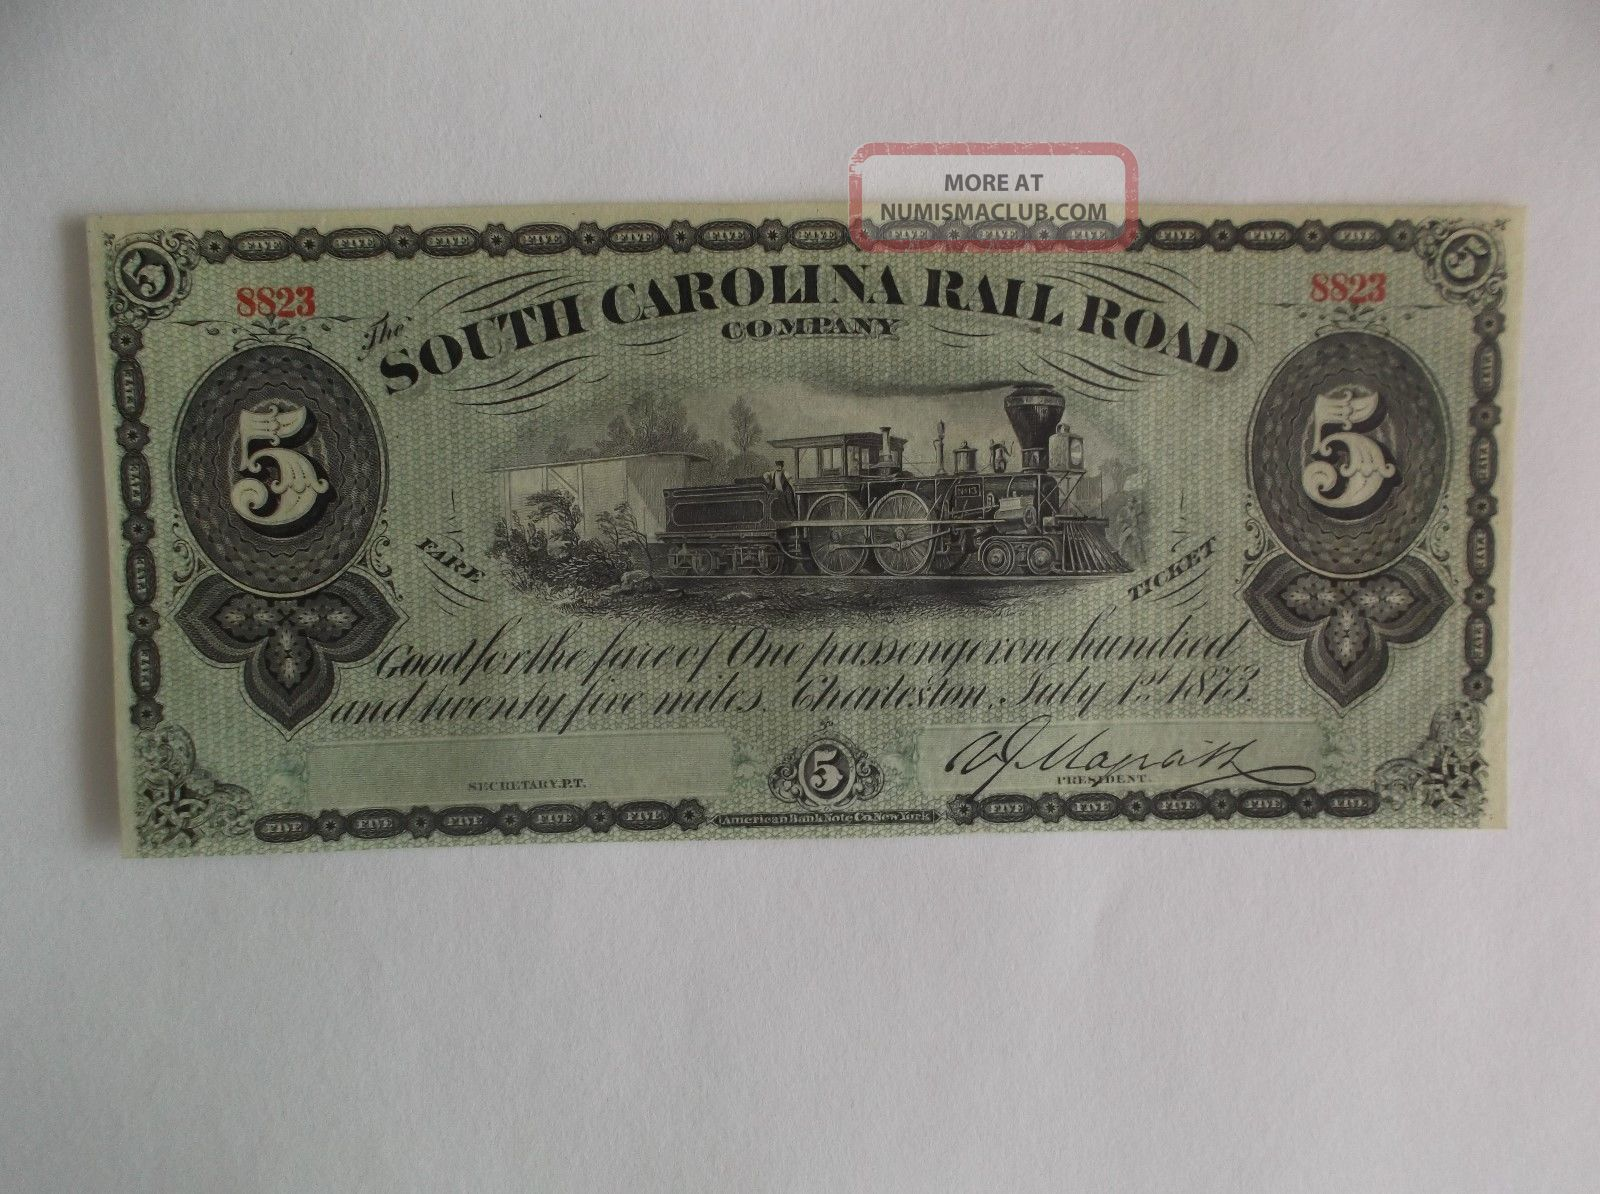 1873 - South Carolina Railroad Company - $5 - Charleston -